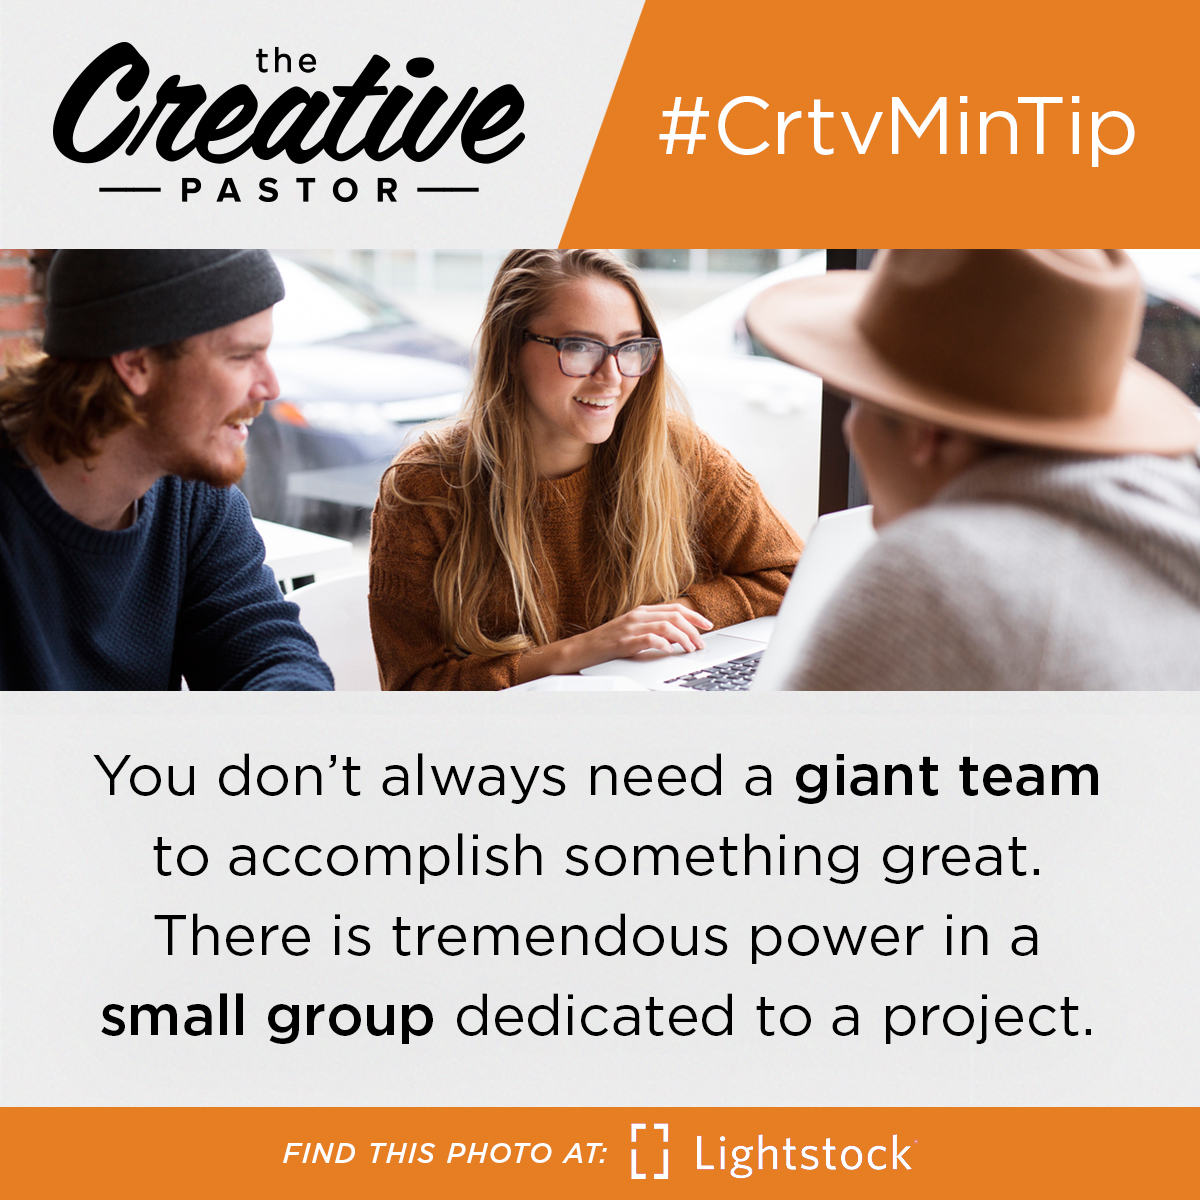 #CrtvMinTip: You don't always need a giant team to accomplish something great. There is tremendous power in a small group dedicated to a project.